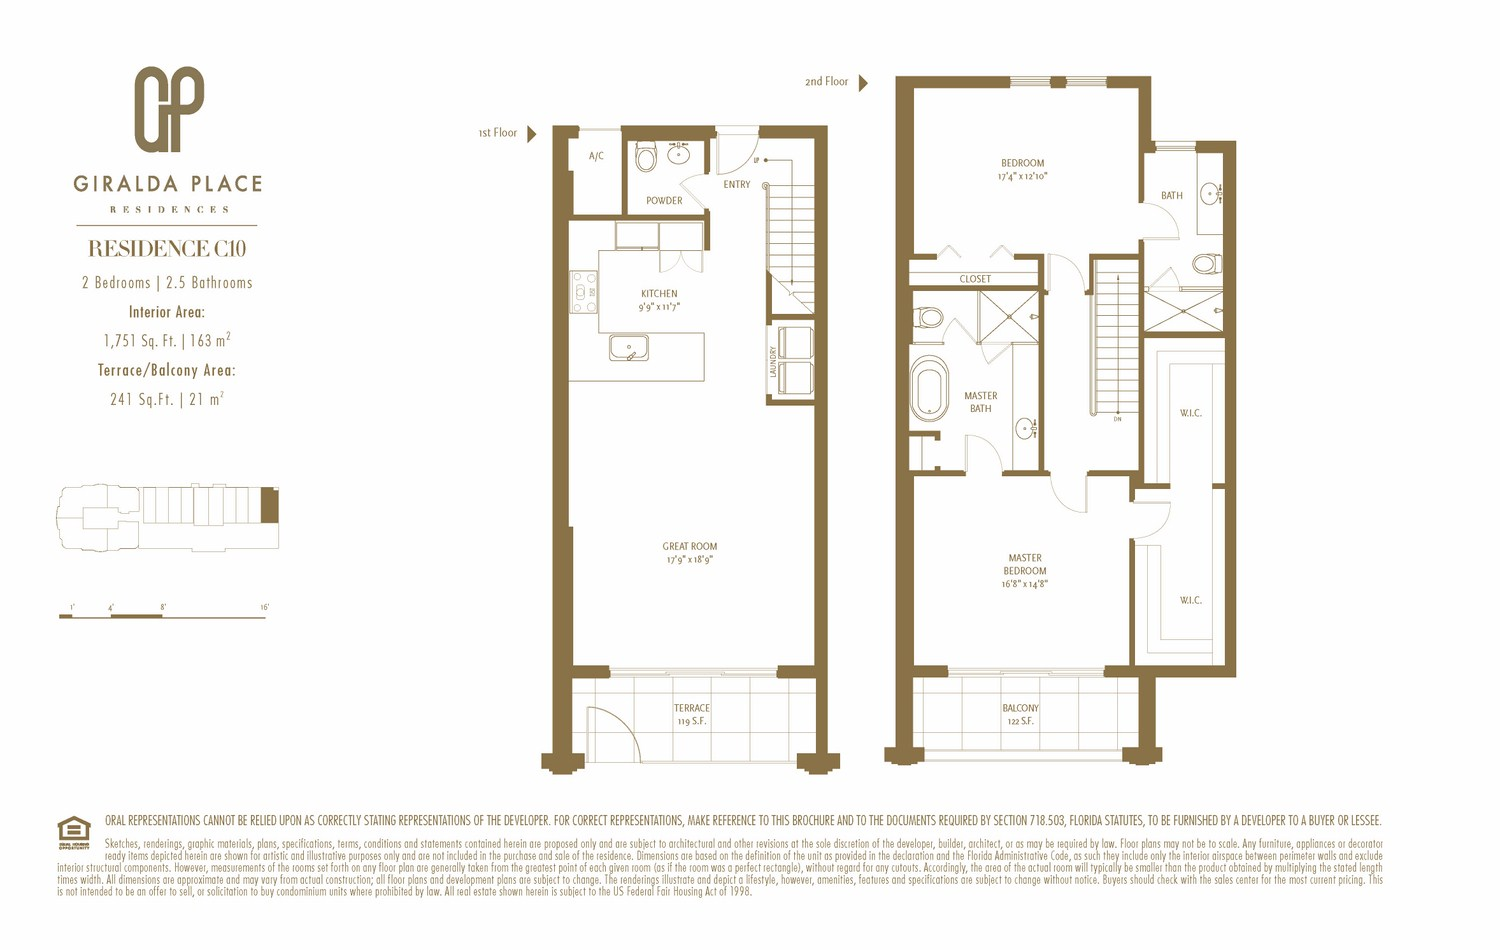 Giralda Place - Floorplan 16